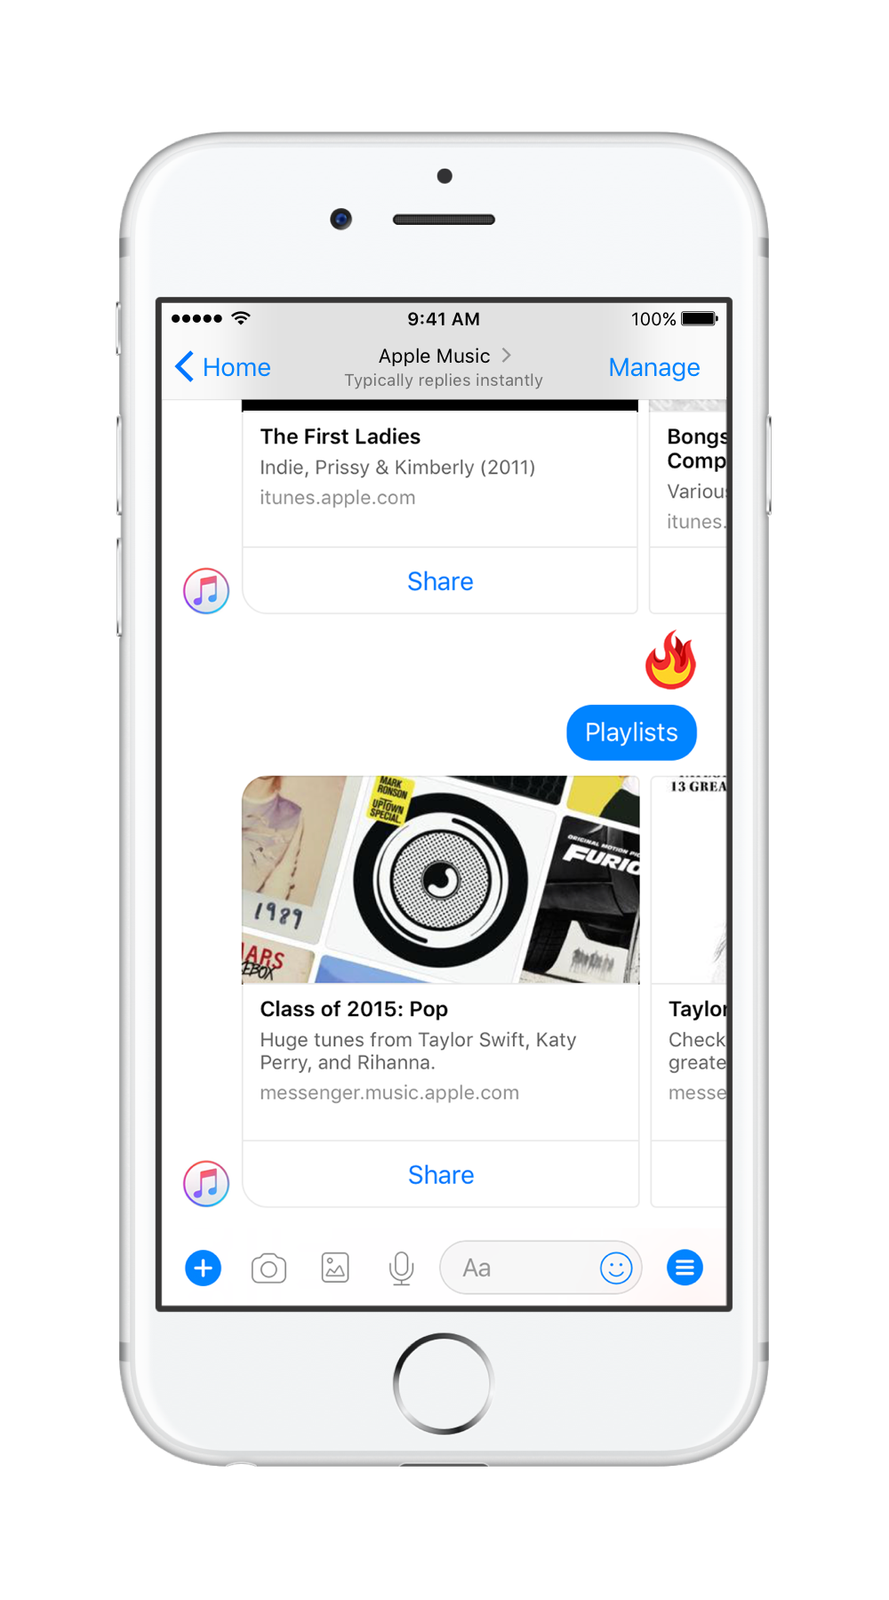 Apple Music officially launches on Facebook Messenger